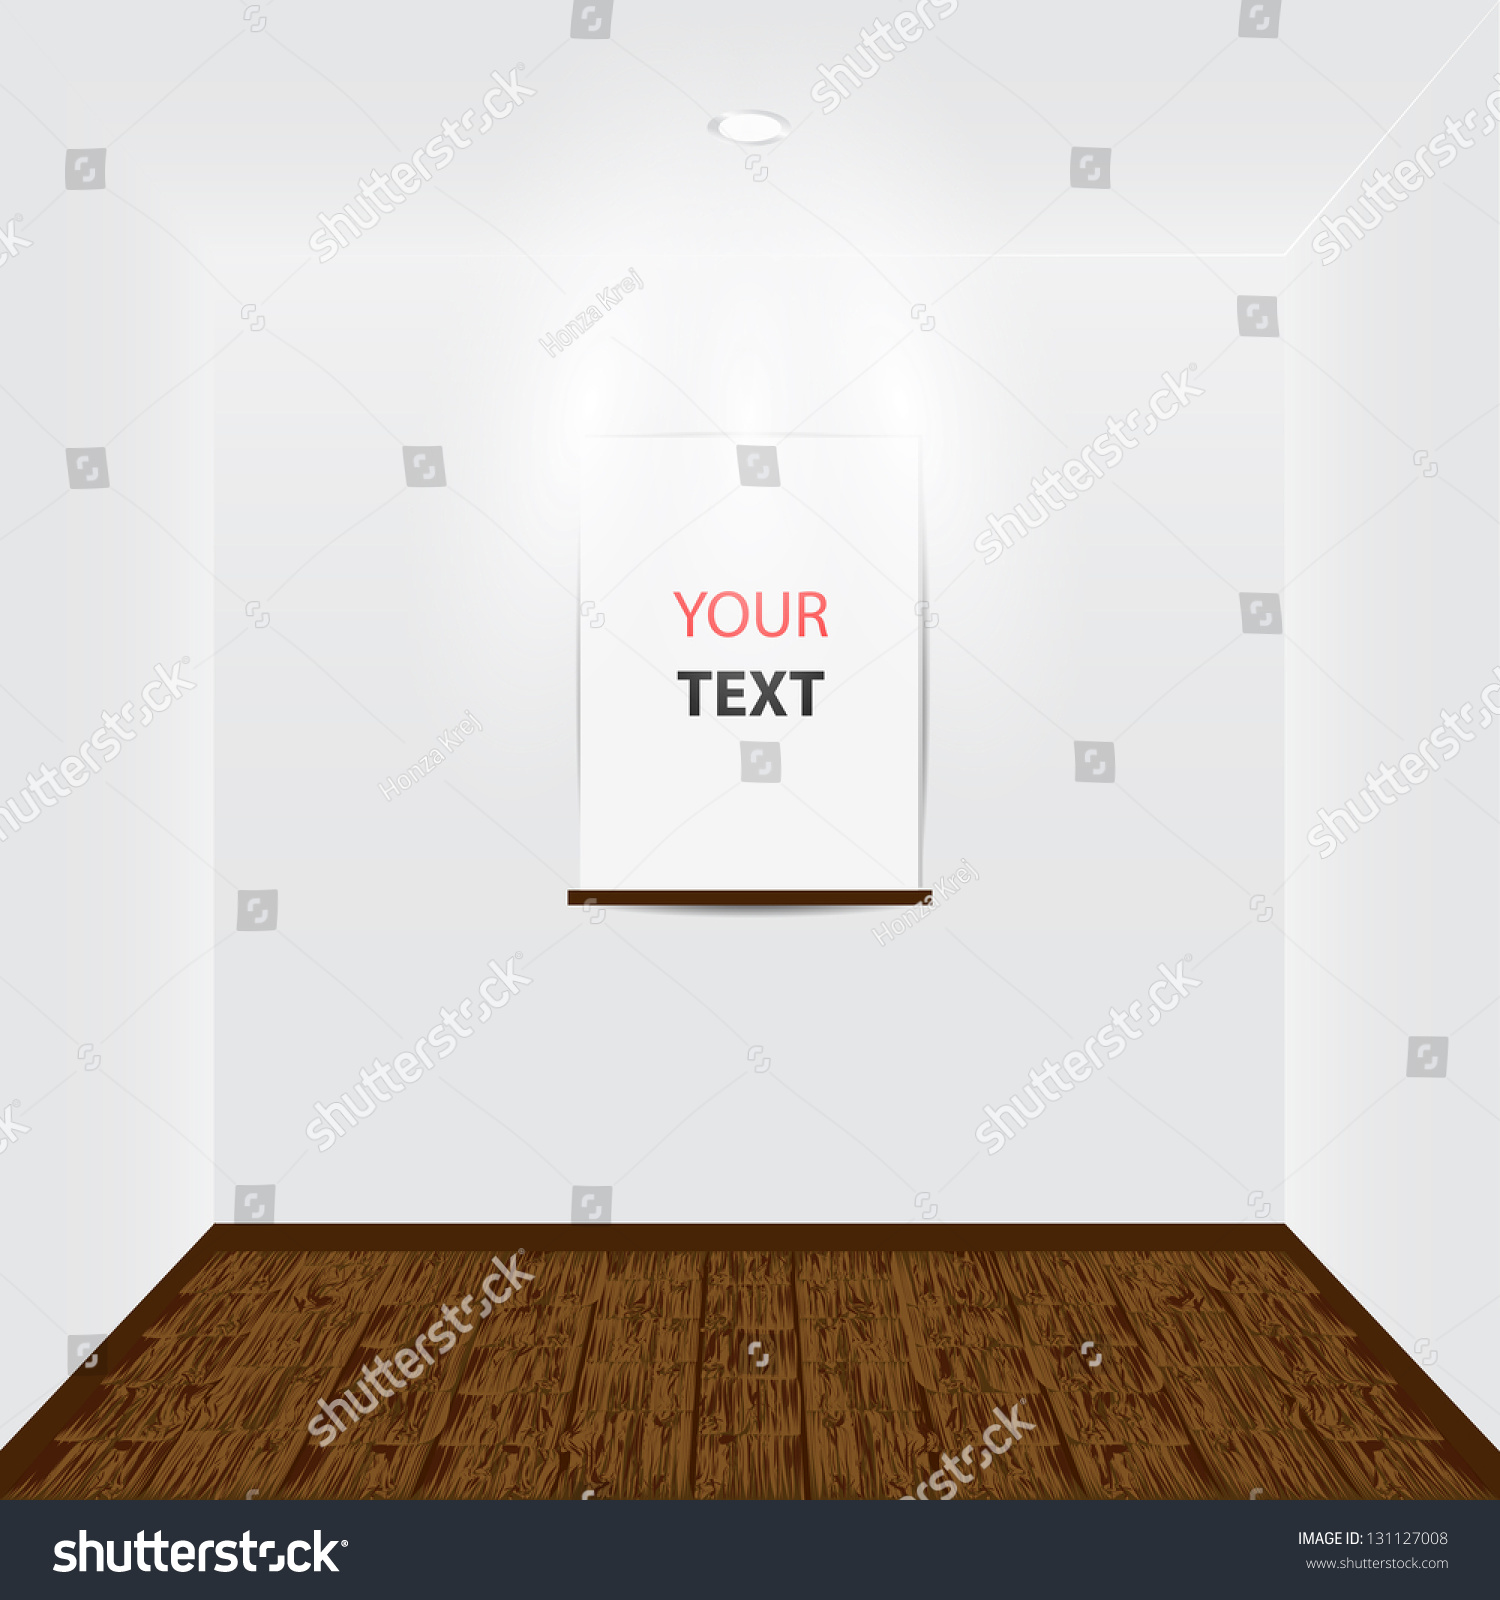 empty room with place for your text and light and wooden floor